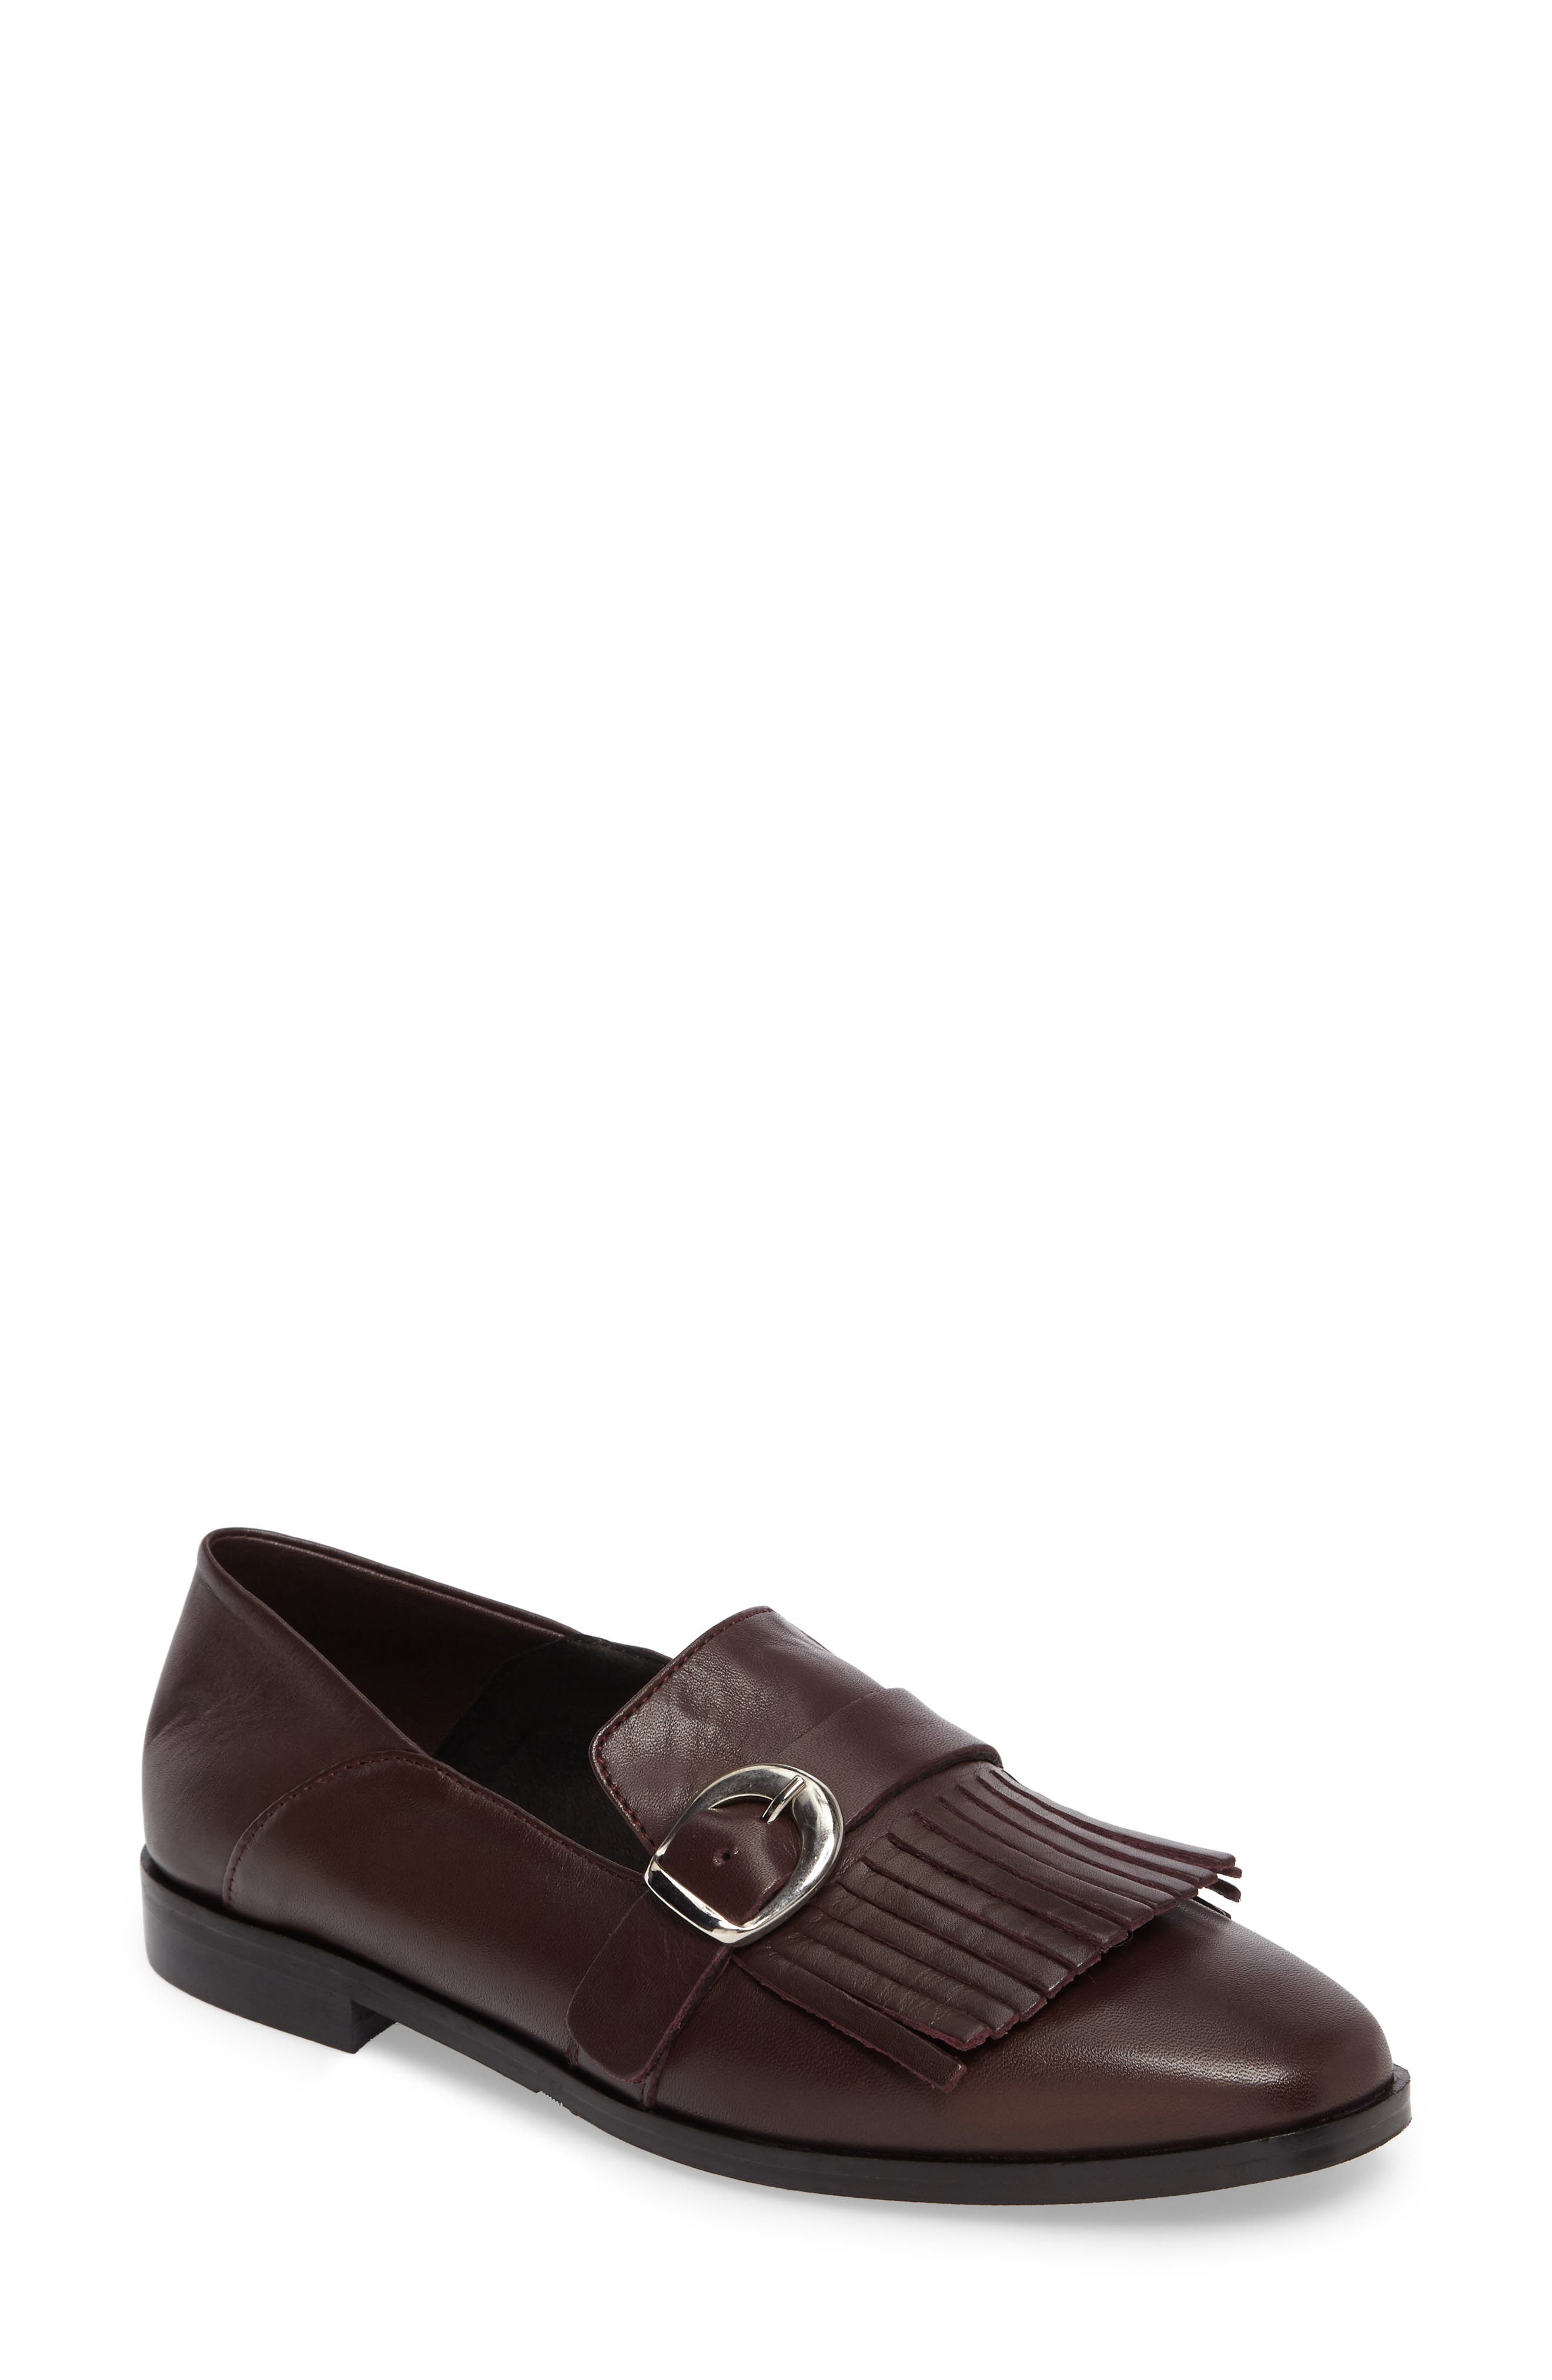 Dame Fringed Loafer Flat,                             Main thumbnail 1, color,                             Burgundy Leather